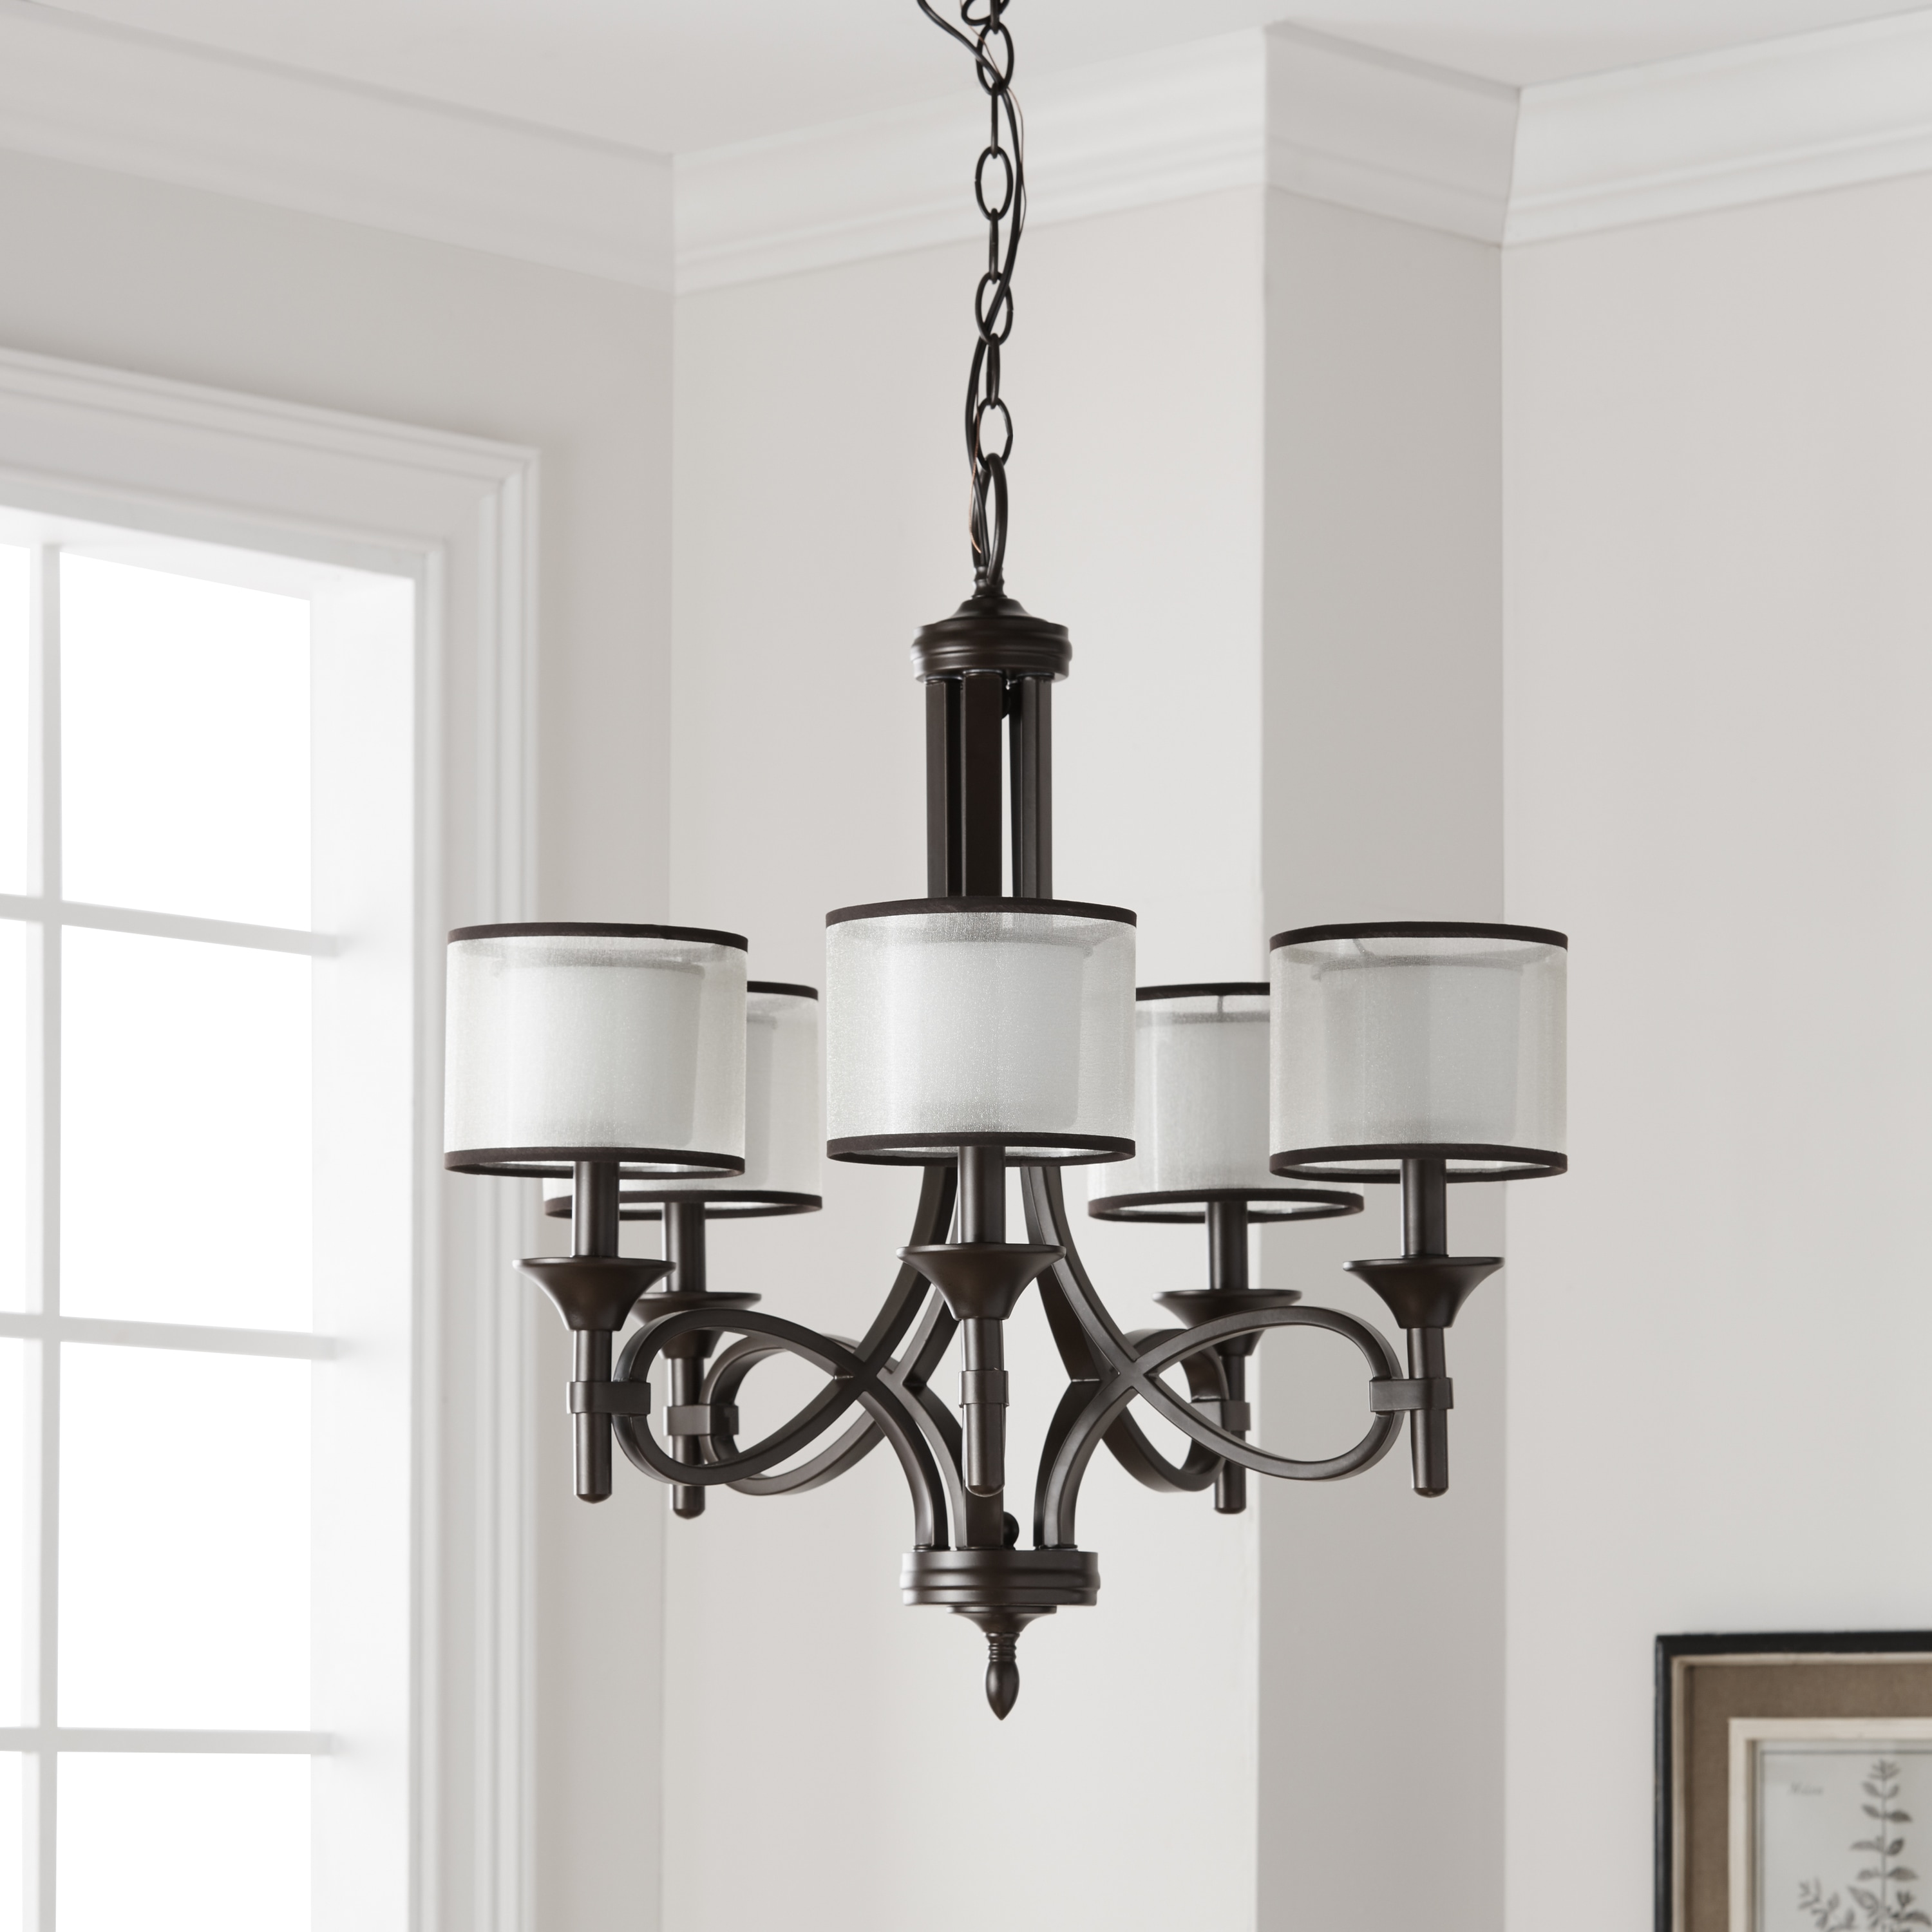 Kichler Lighting Lacey Collection 5 Light Mission Bronze Chandelier